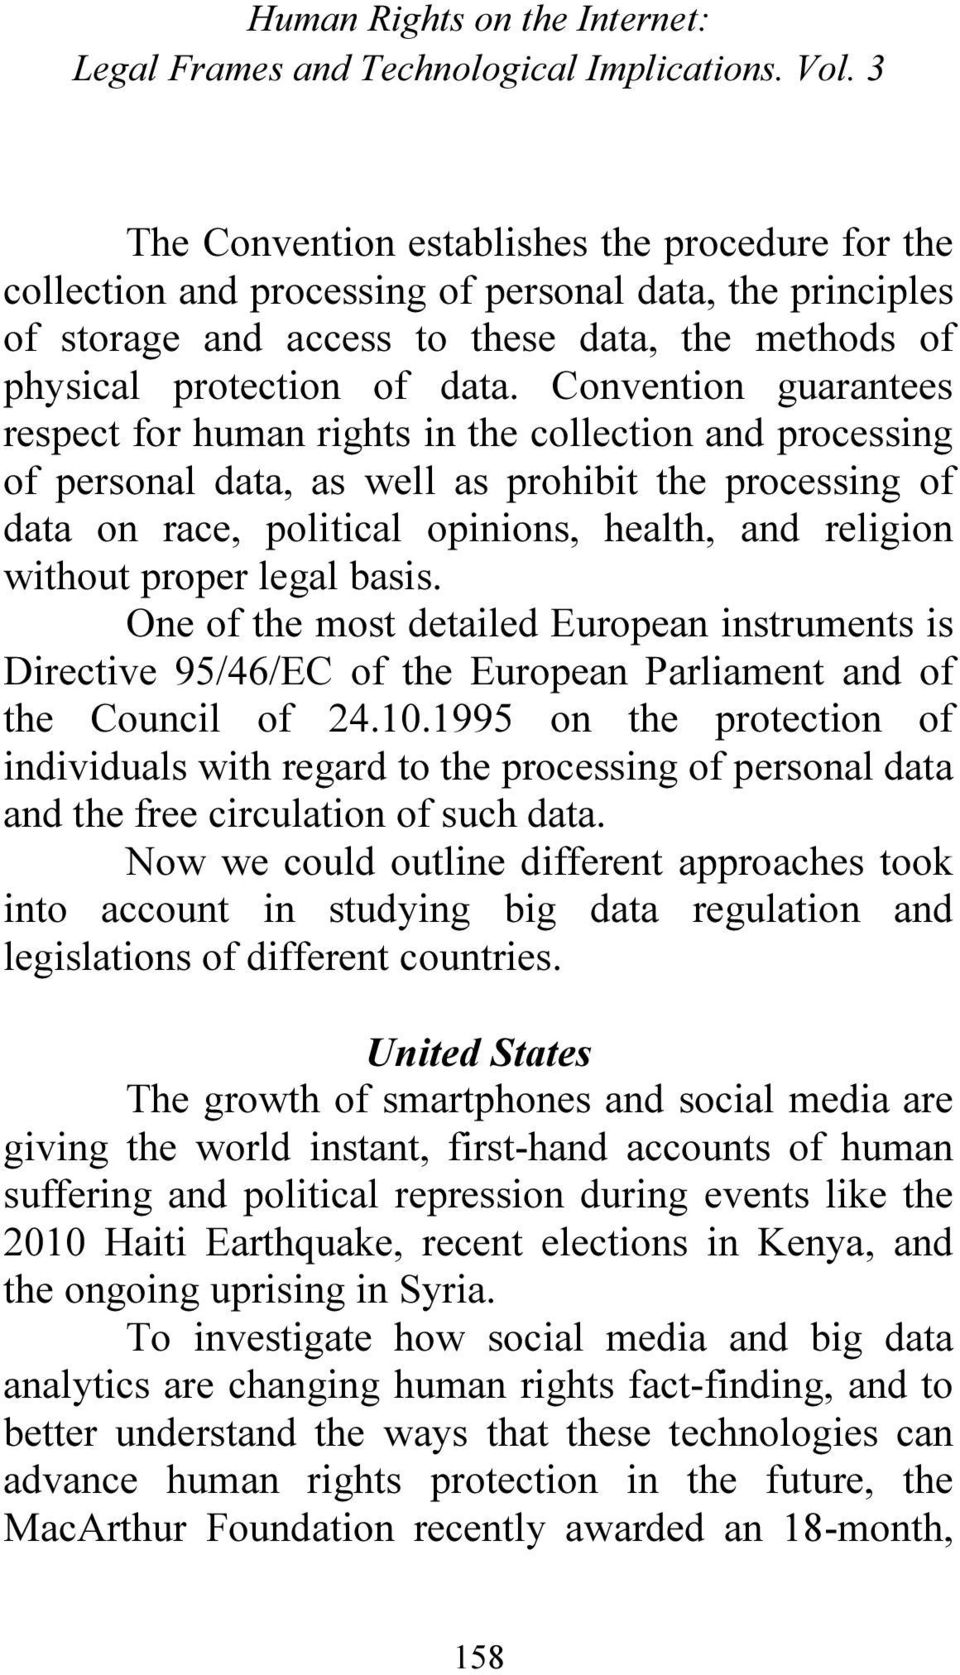 Convention guarantees respect for human rights in the collection and processing of personal data, as well as prohibit the processing of data on race, political opinions, health, and religion without